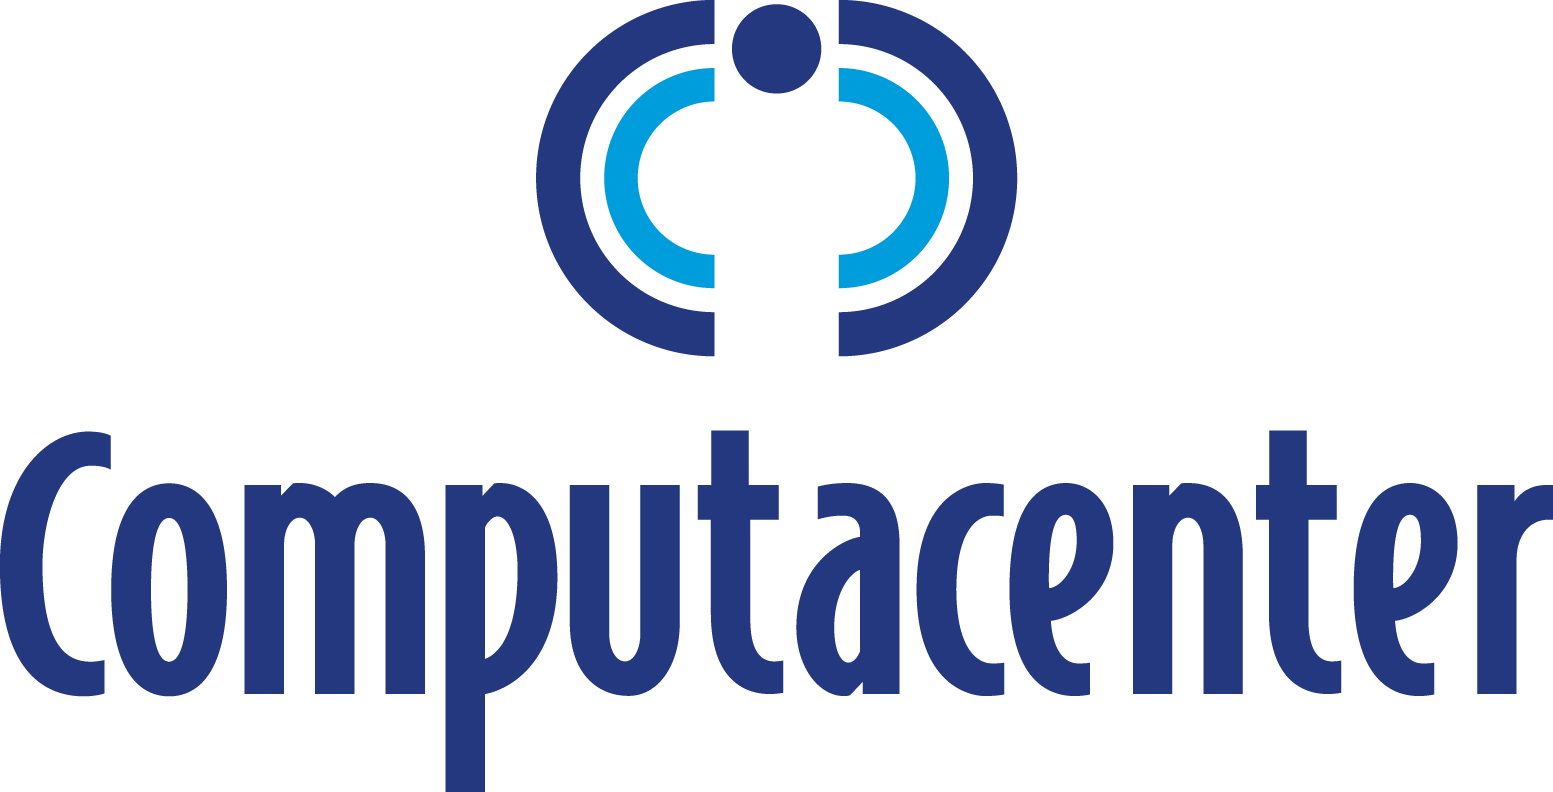 Partner Computacenter Logo